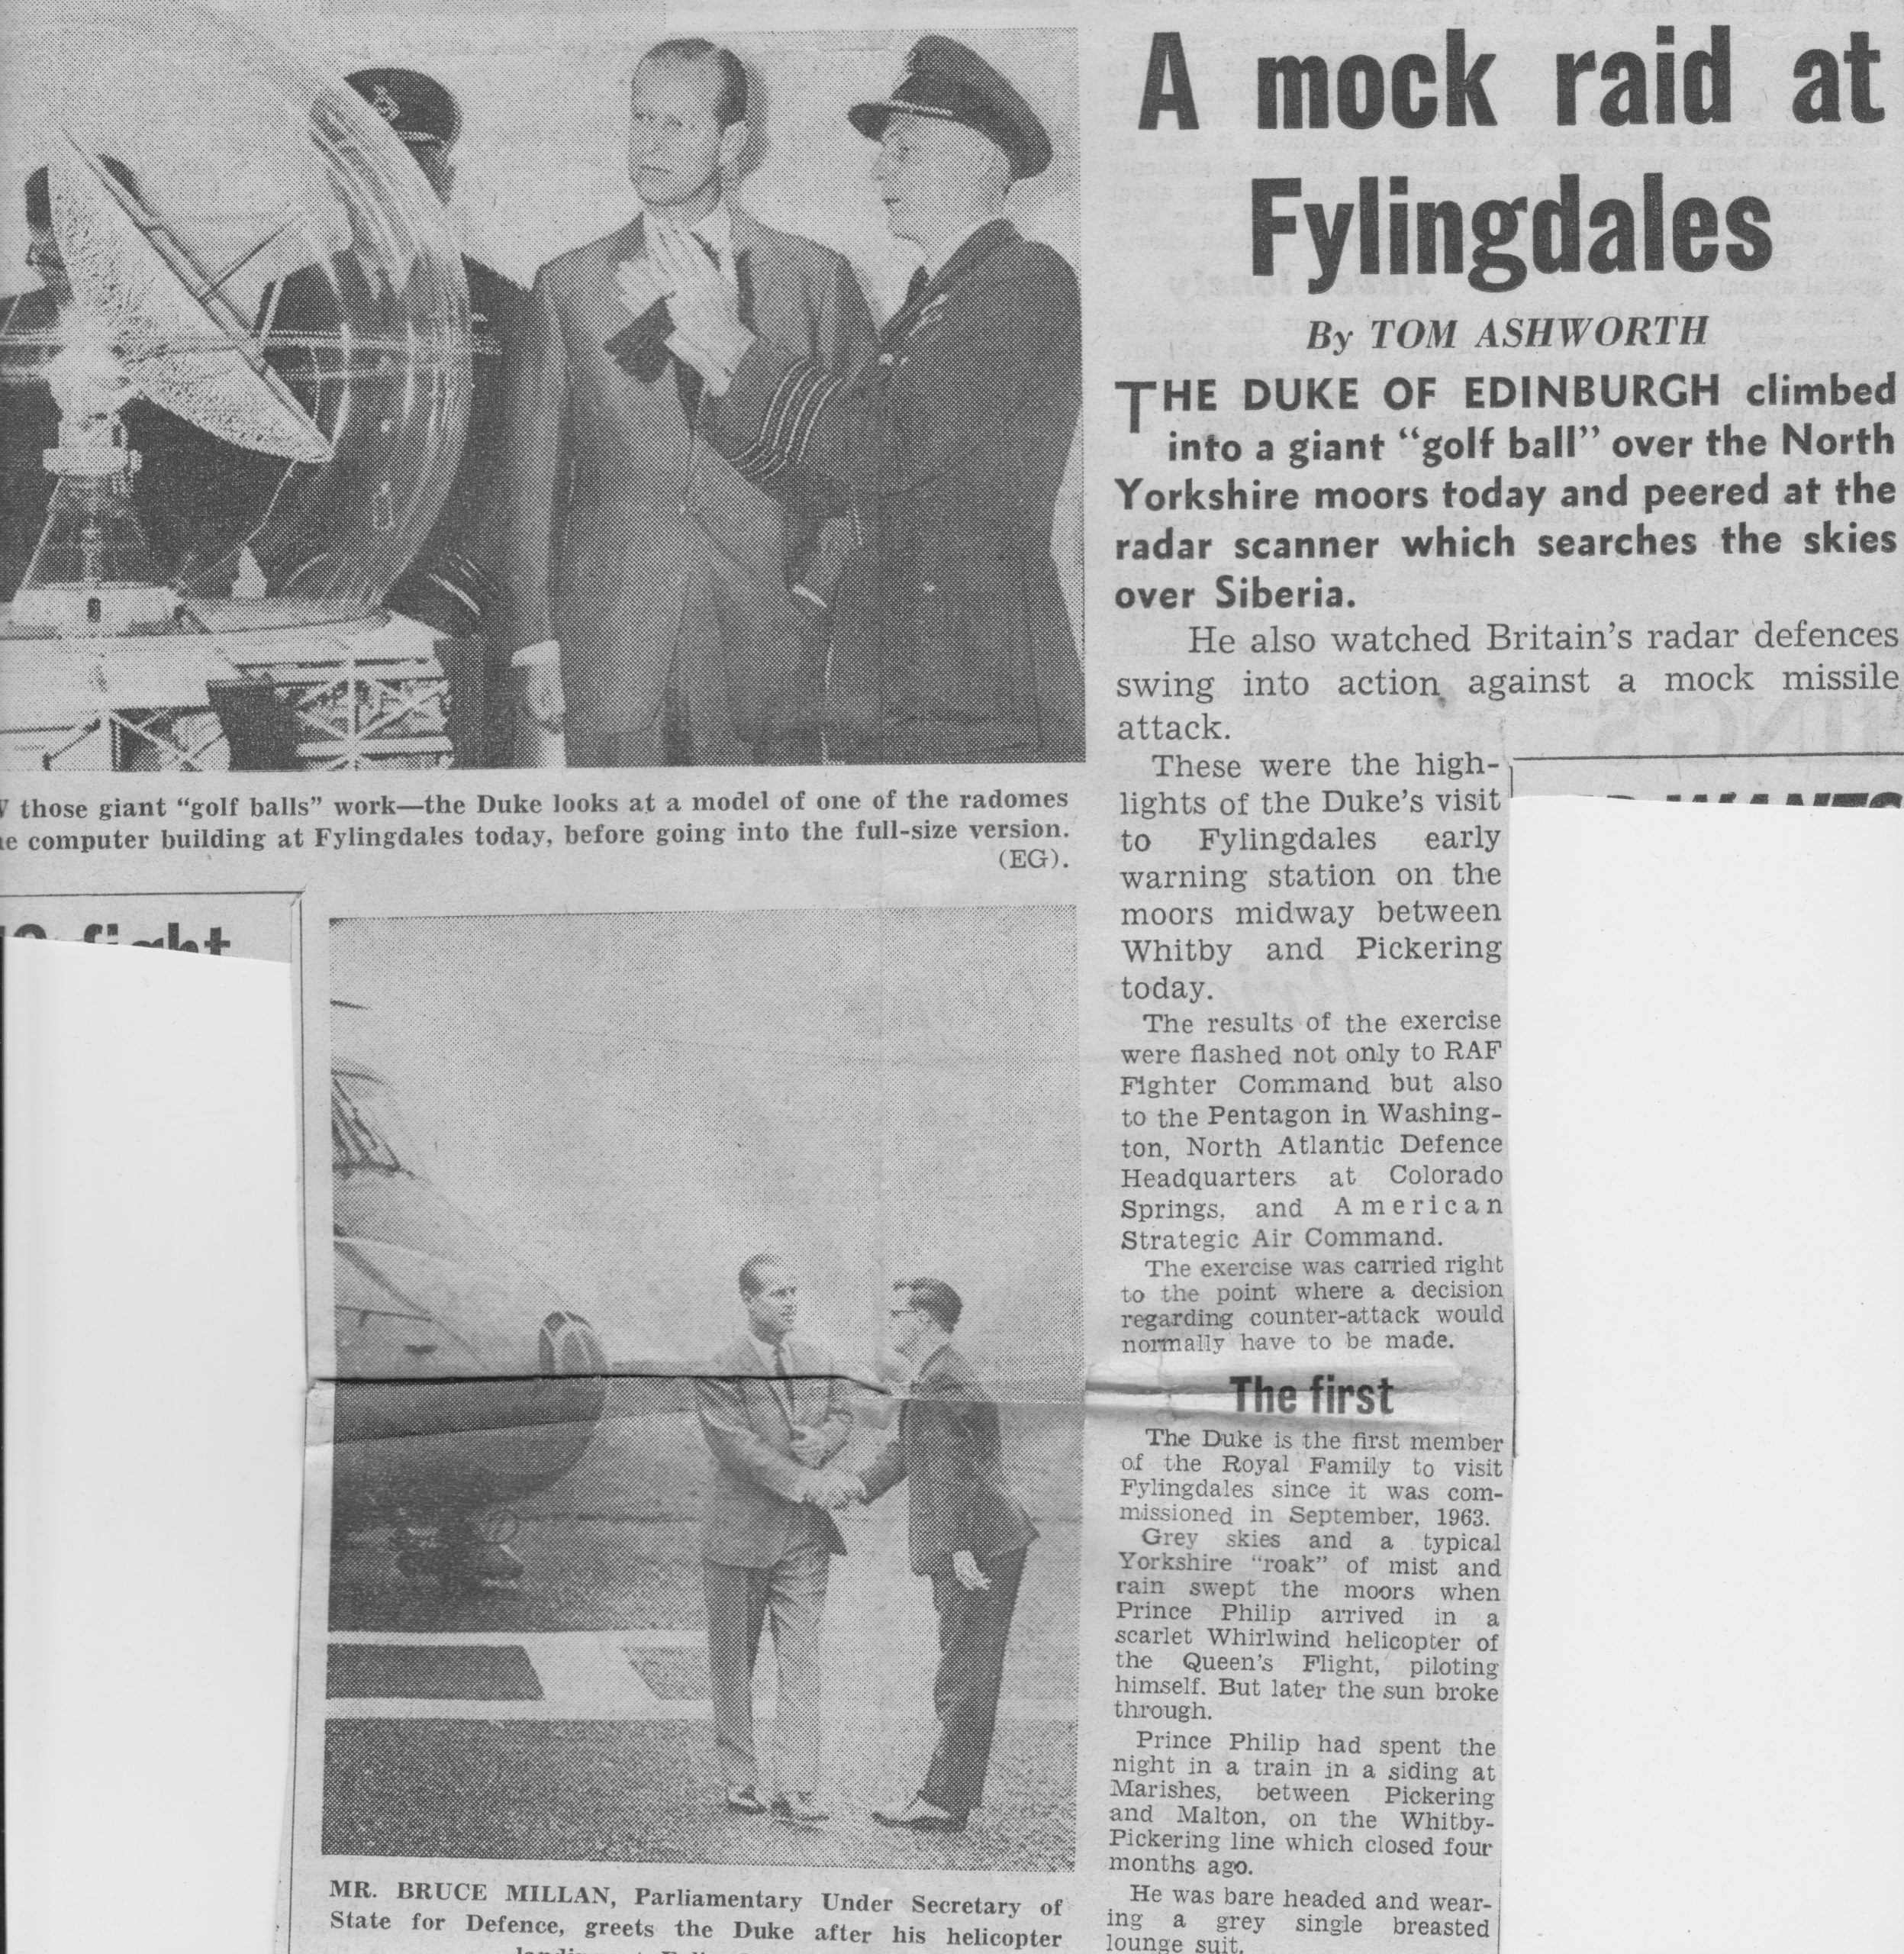 Part two of the Coverage of the Duke's Visit to Fylingdales